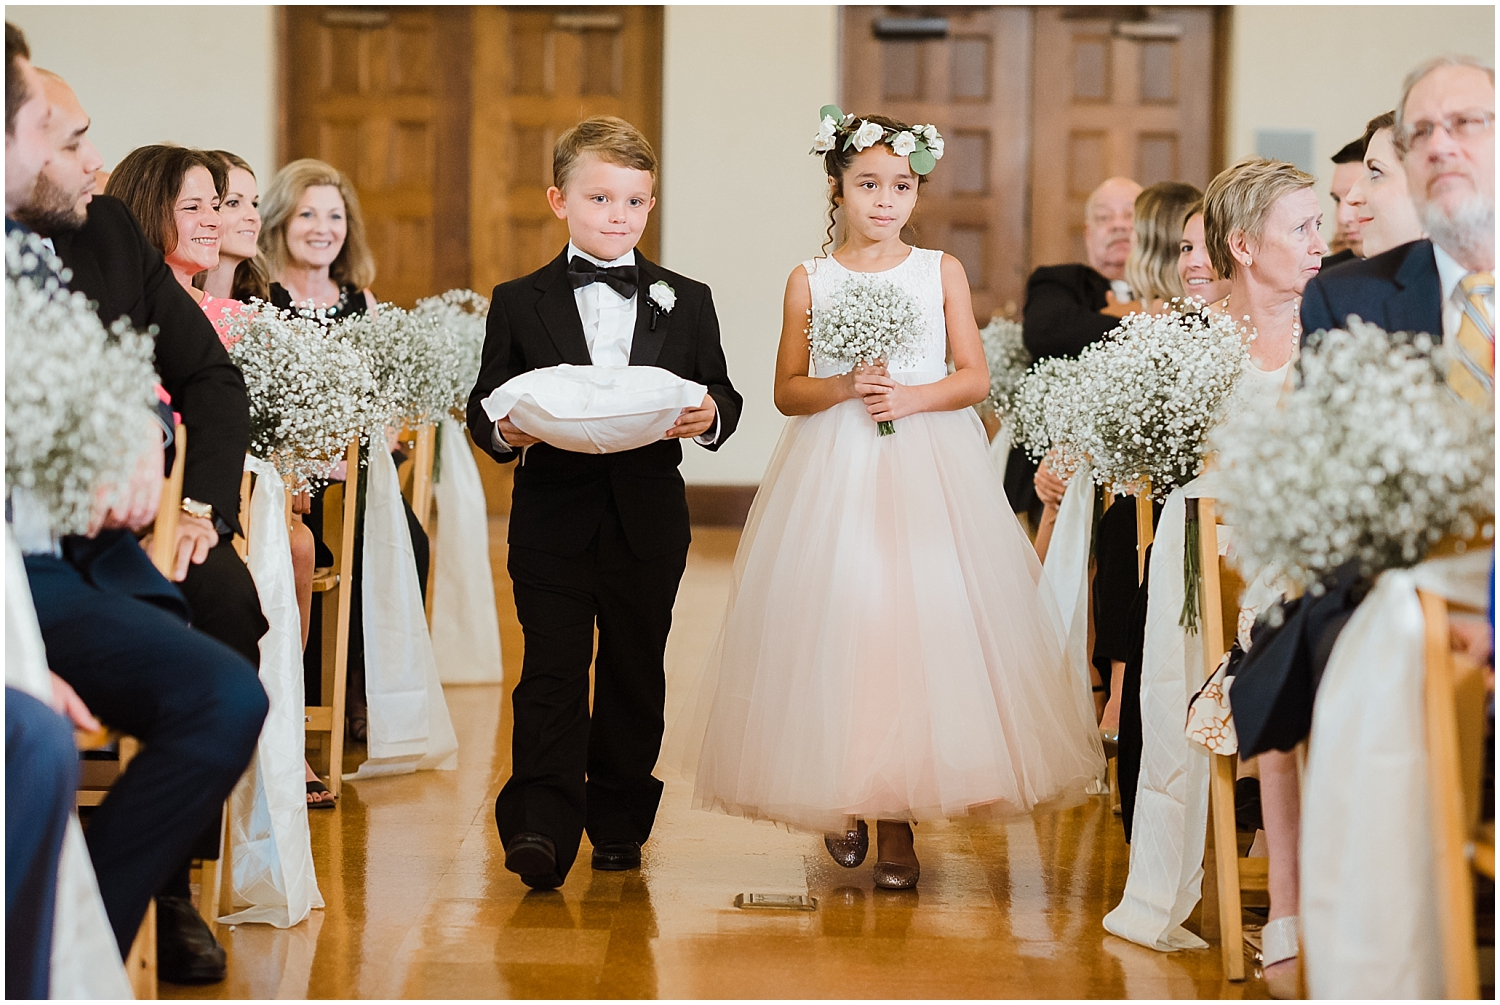 flower girl and ring bearer walk down the aisle